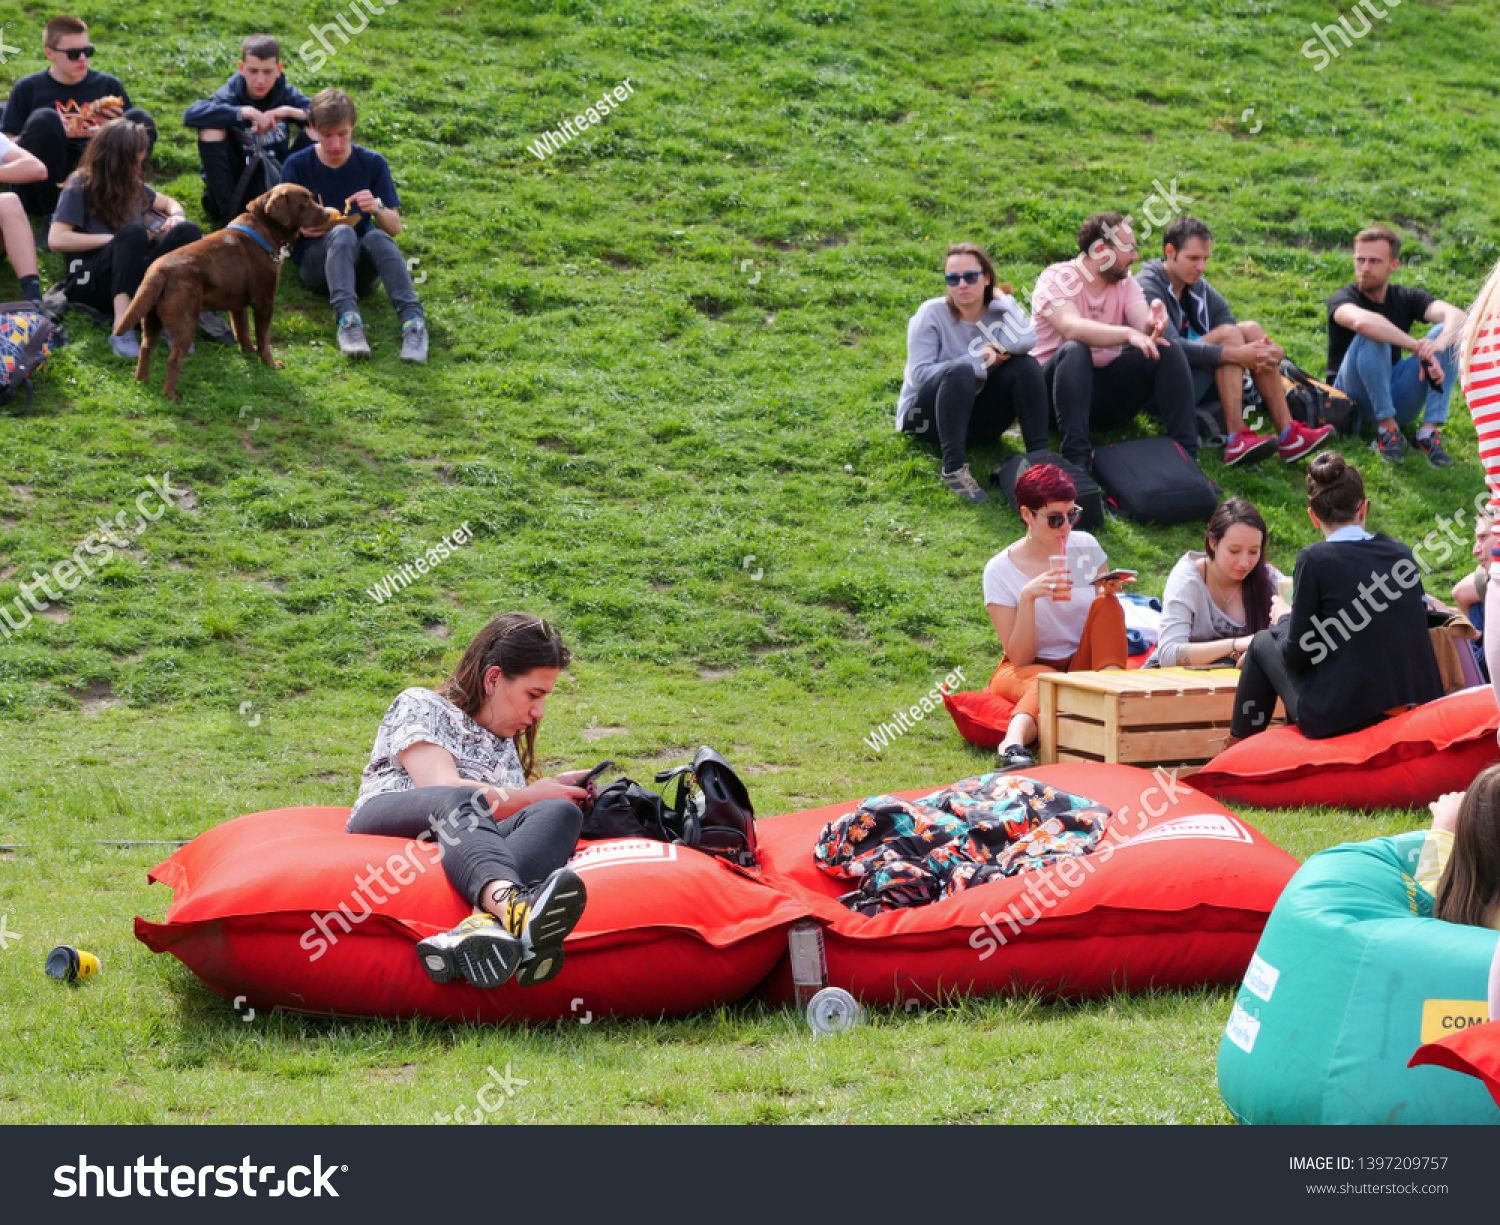 People Relax On Red Inflatable Mattresses Placed On The Green Grass At The Street Food Festival In Cluj Napoca Romania On May 12 2019 Food Festival Festival